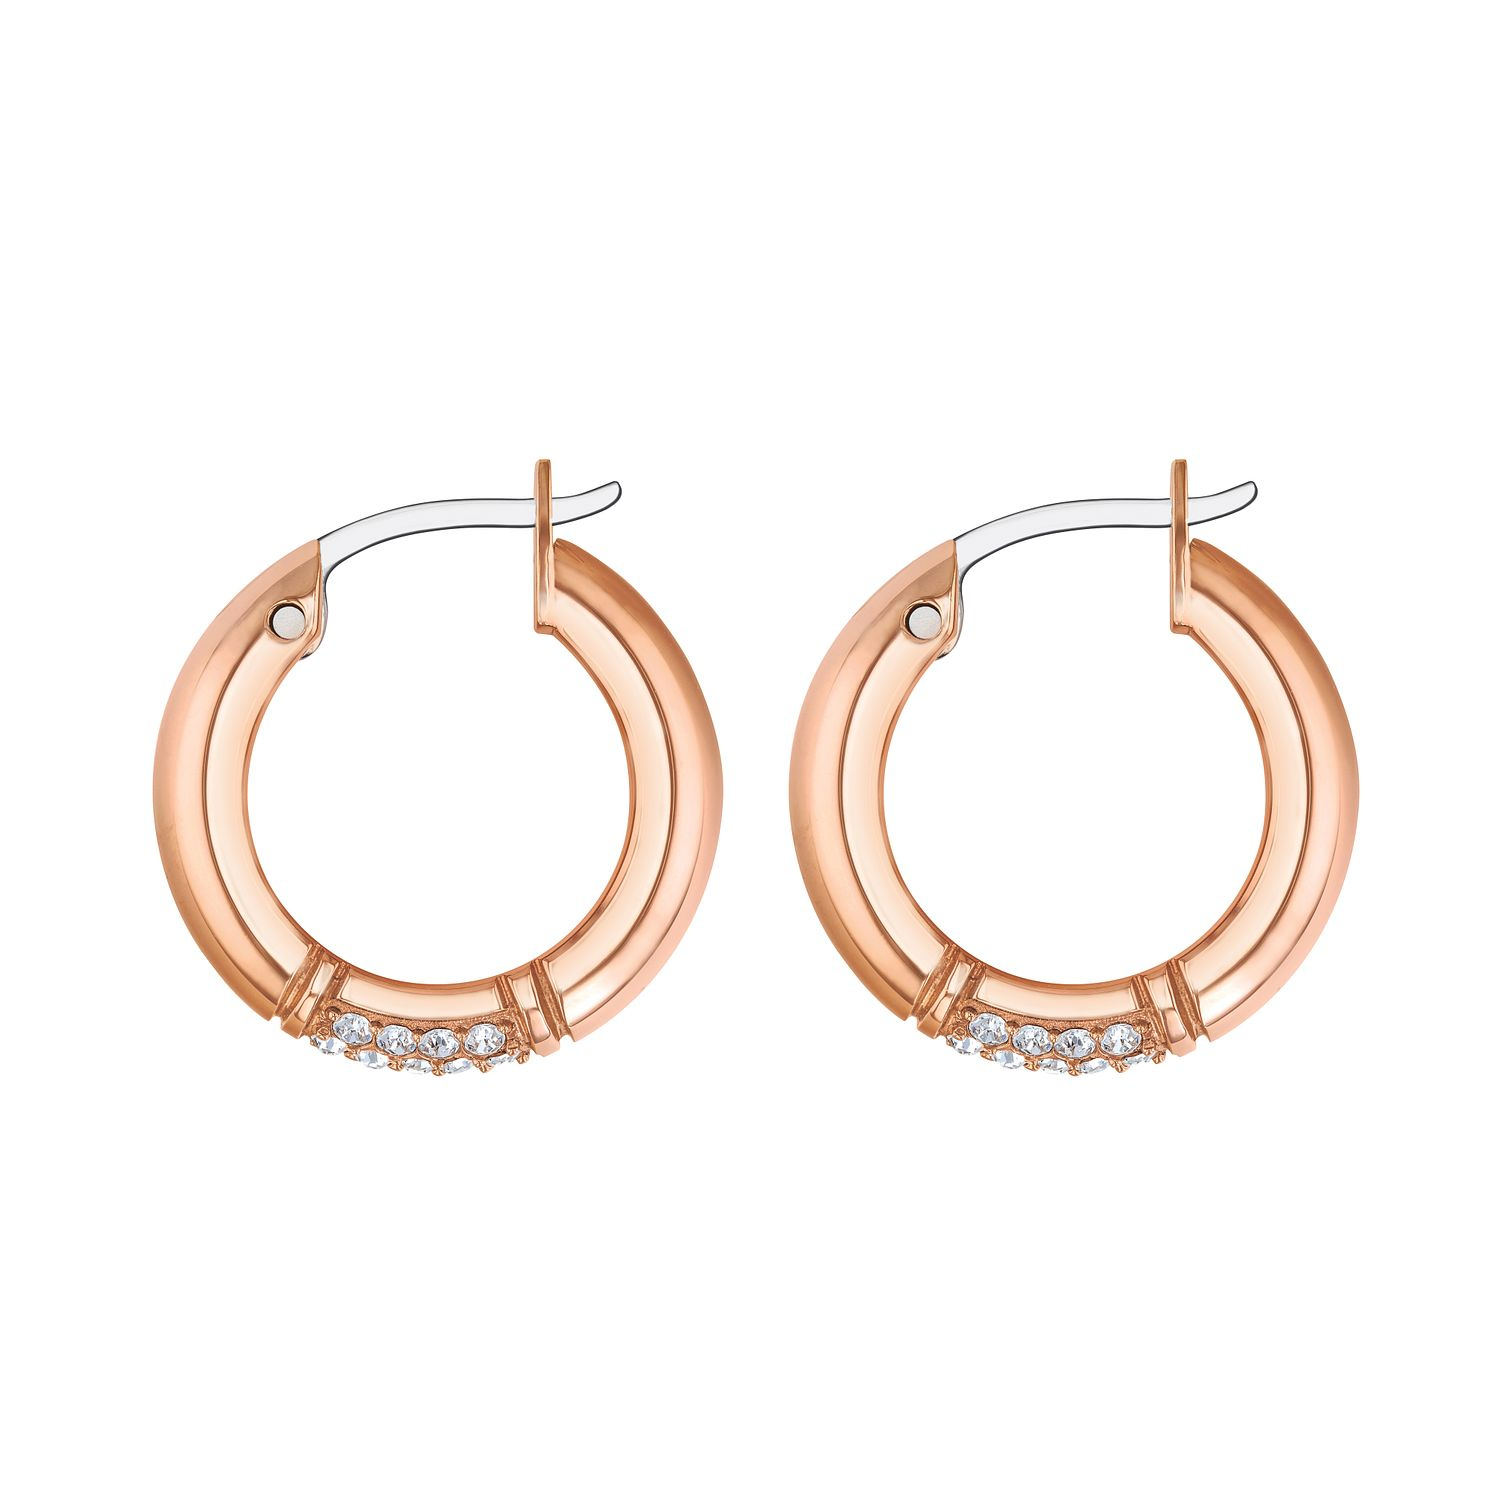 Tommy Hilfiger Rose Gold Tone Crystal Creole Hoop Earrings - Product number 4133366